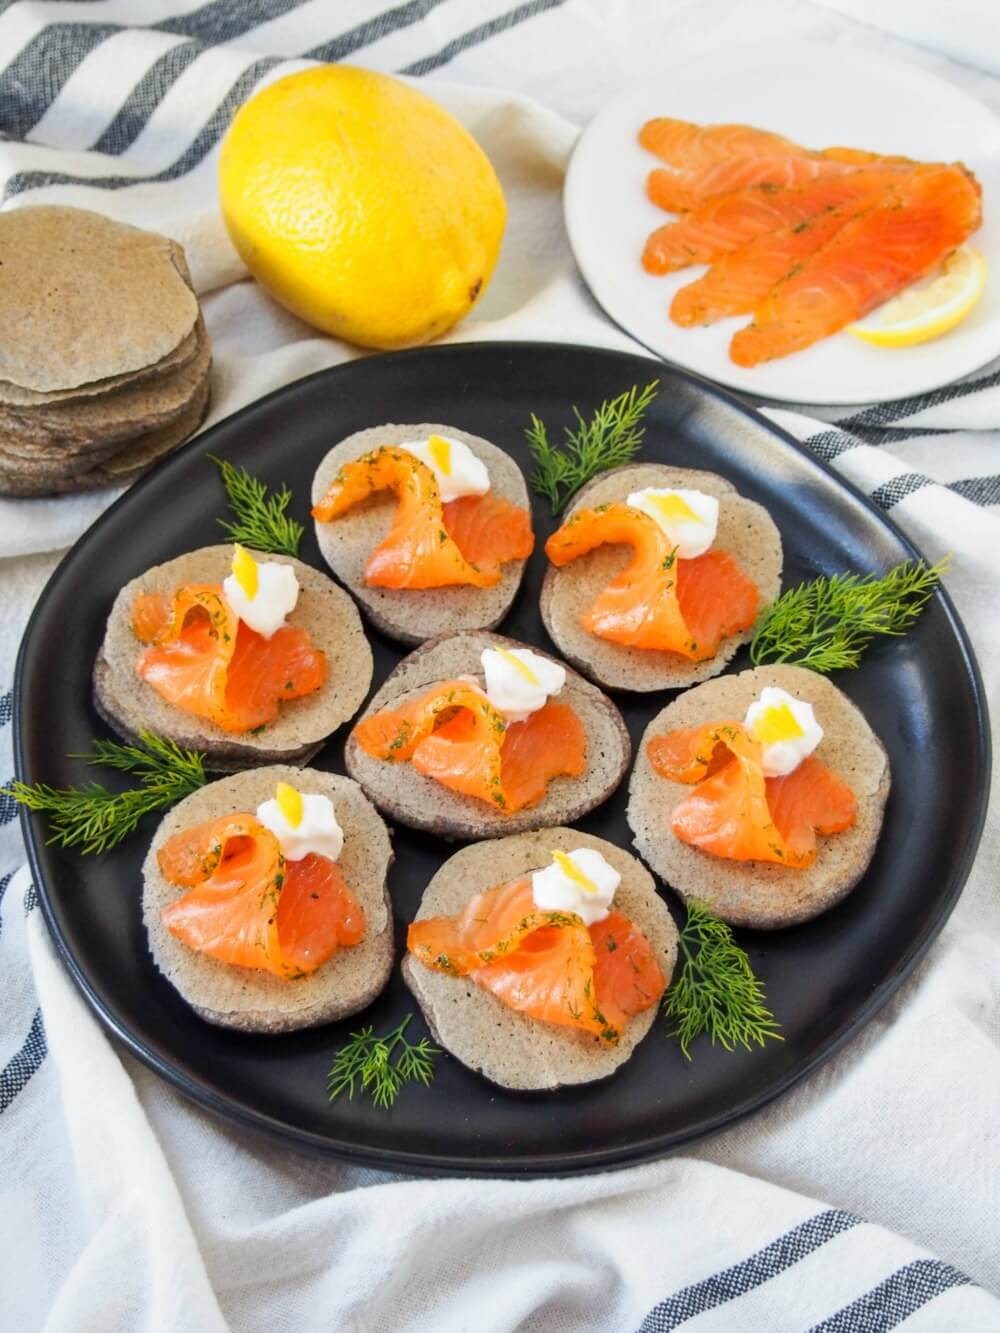 blini with smoked salmon gravlax